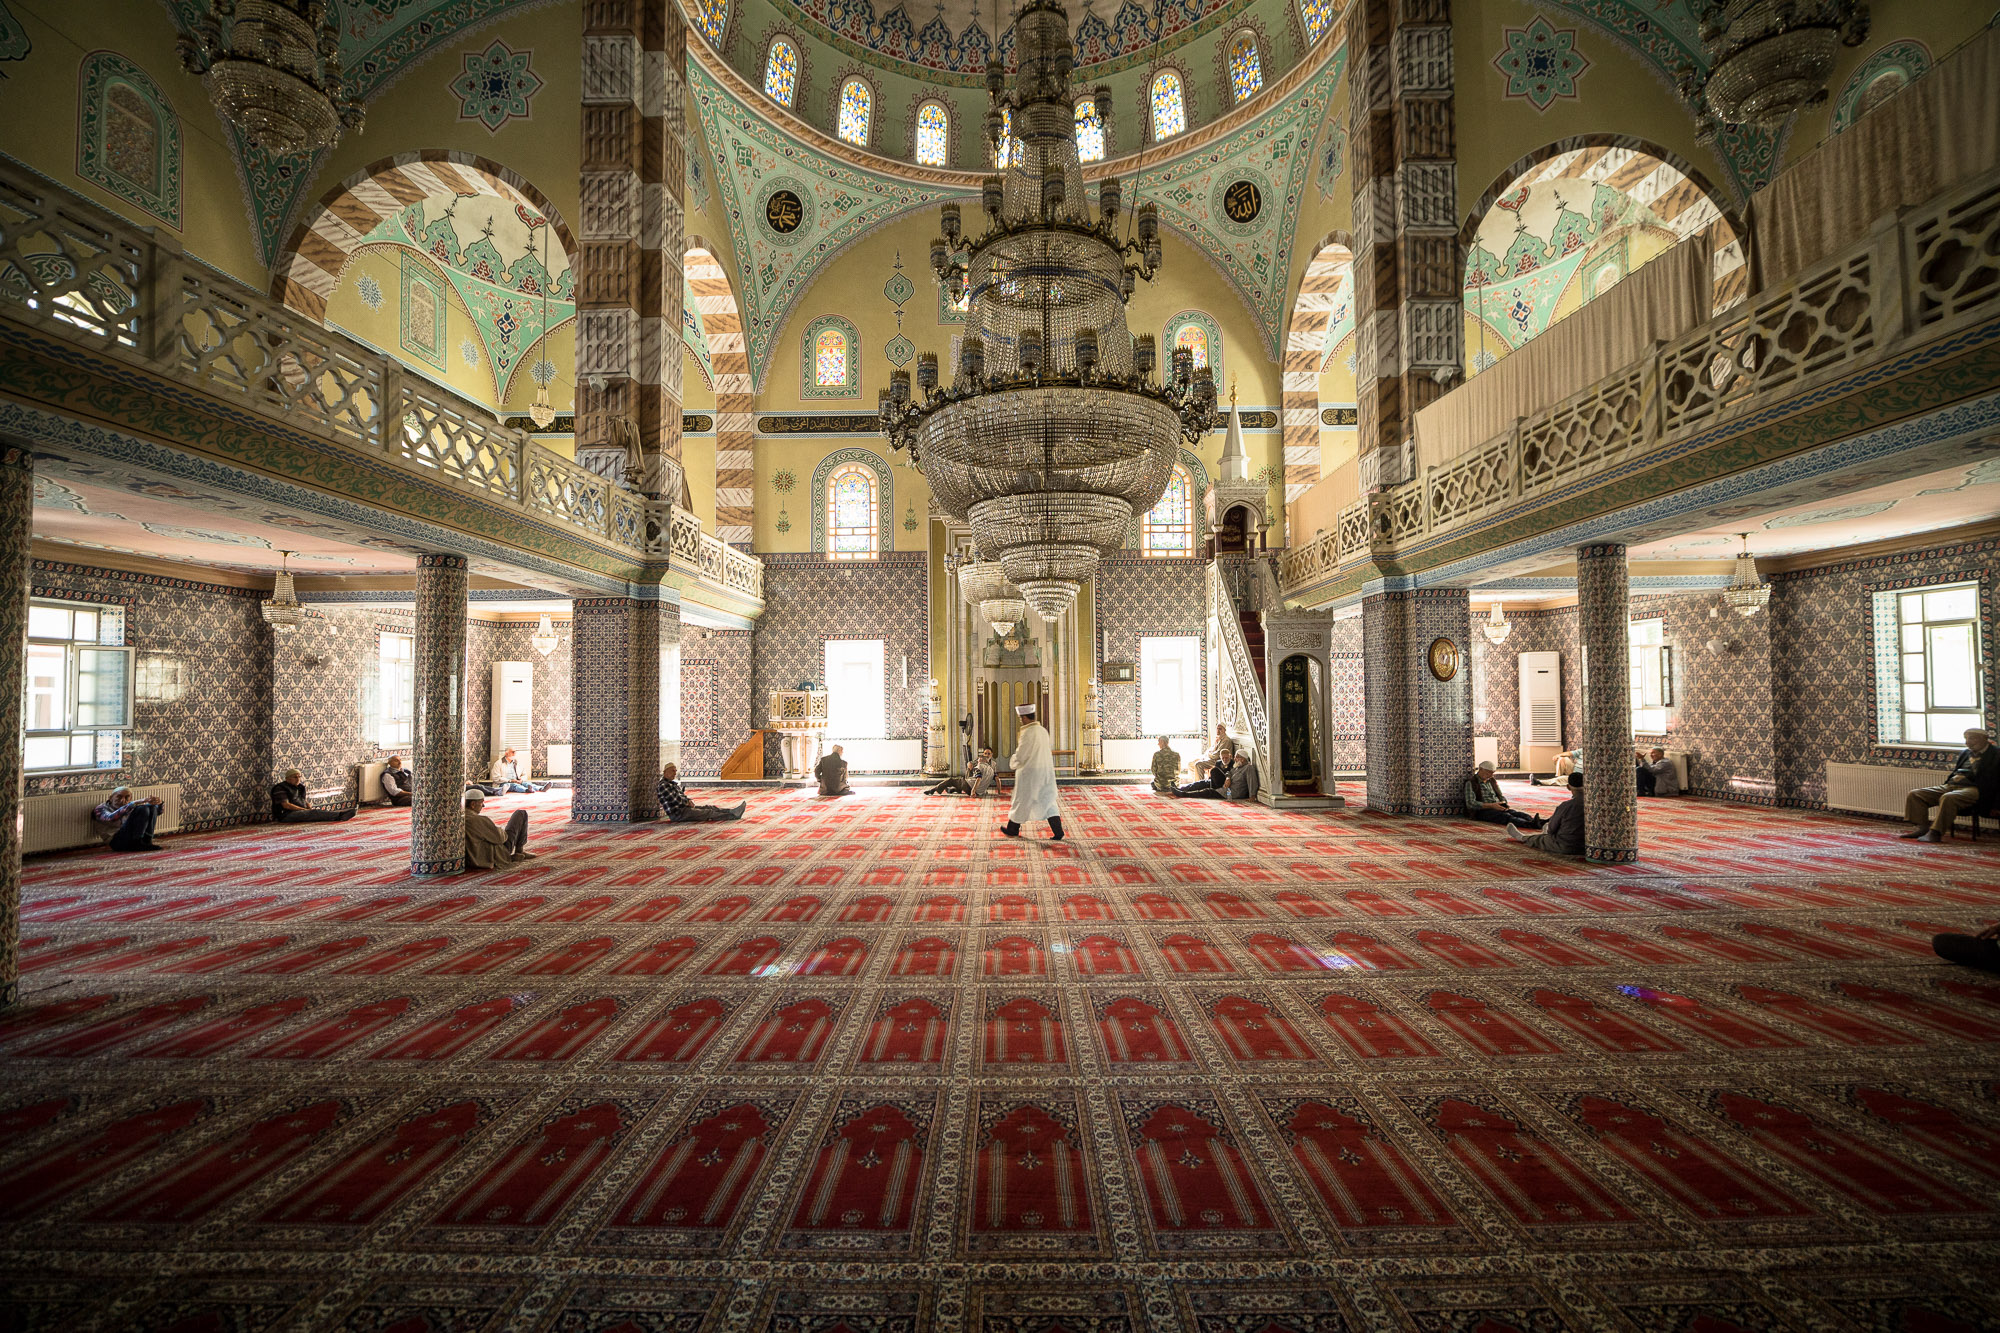 inside the mosque in Pazar